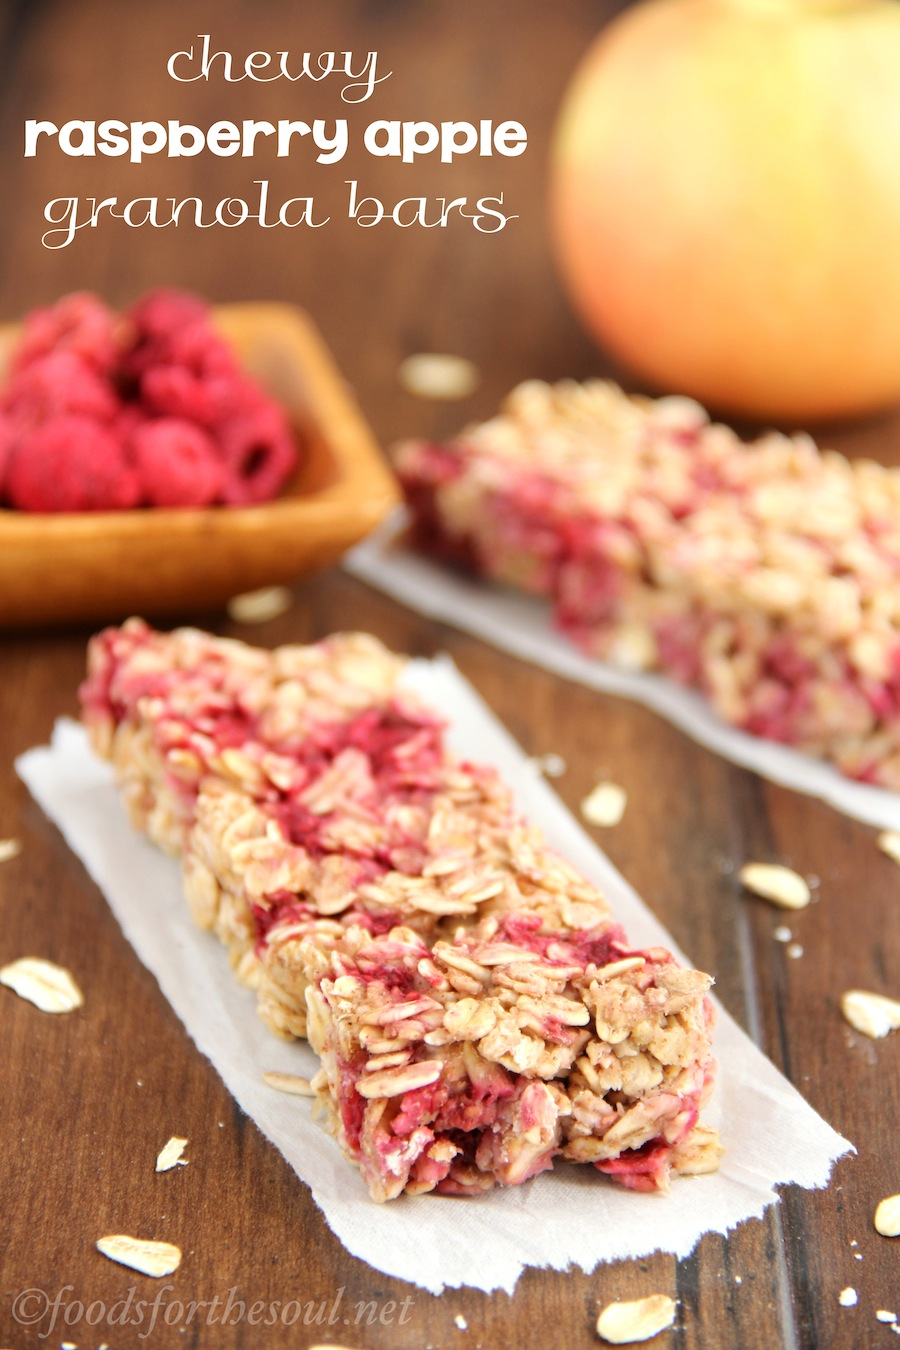 chewy-raspberry-apple-granola-bars_8650-labeled